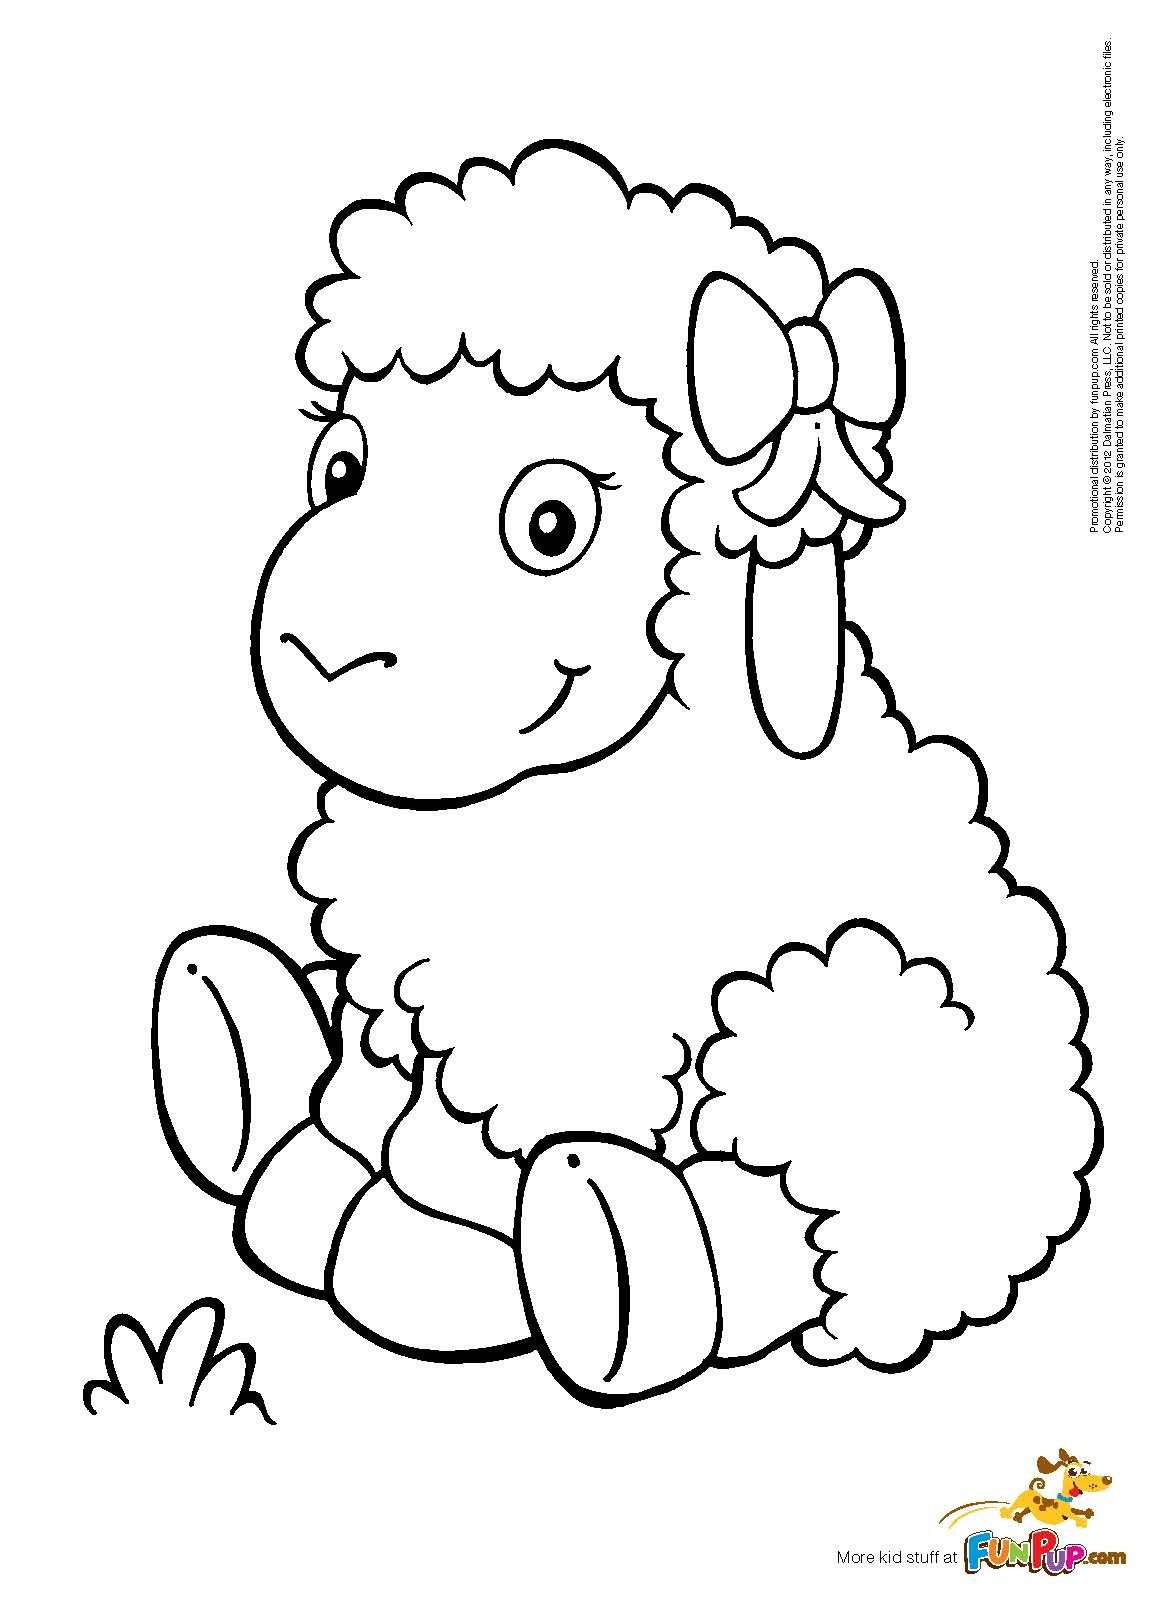 march coloring page grab your hd coloring pages httphdcoloringpageblogspot